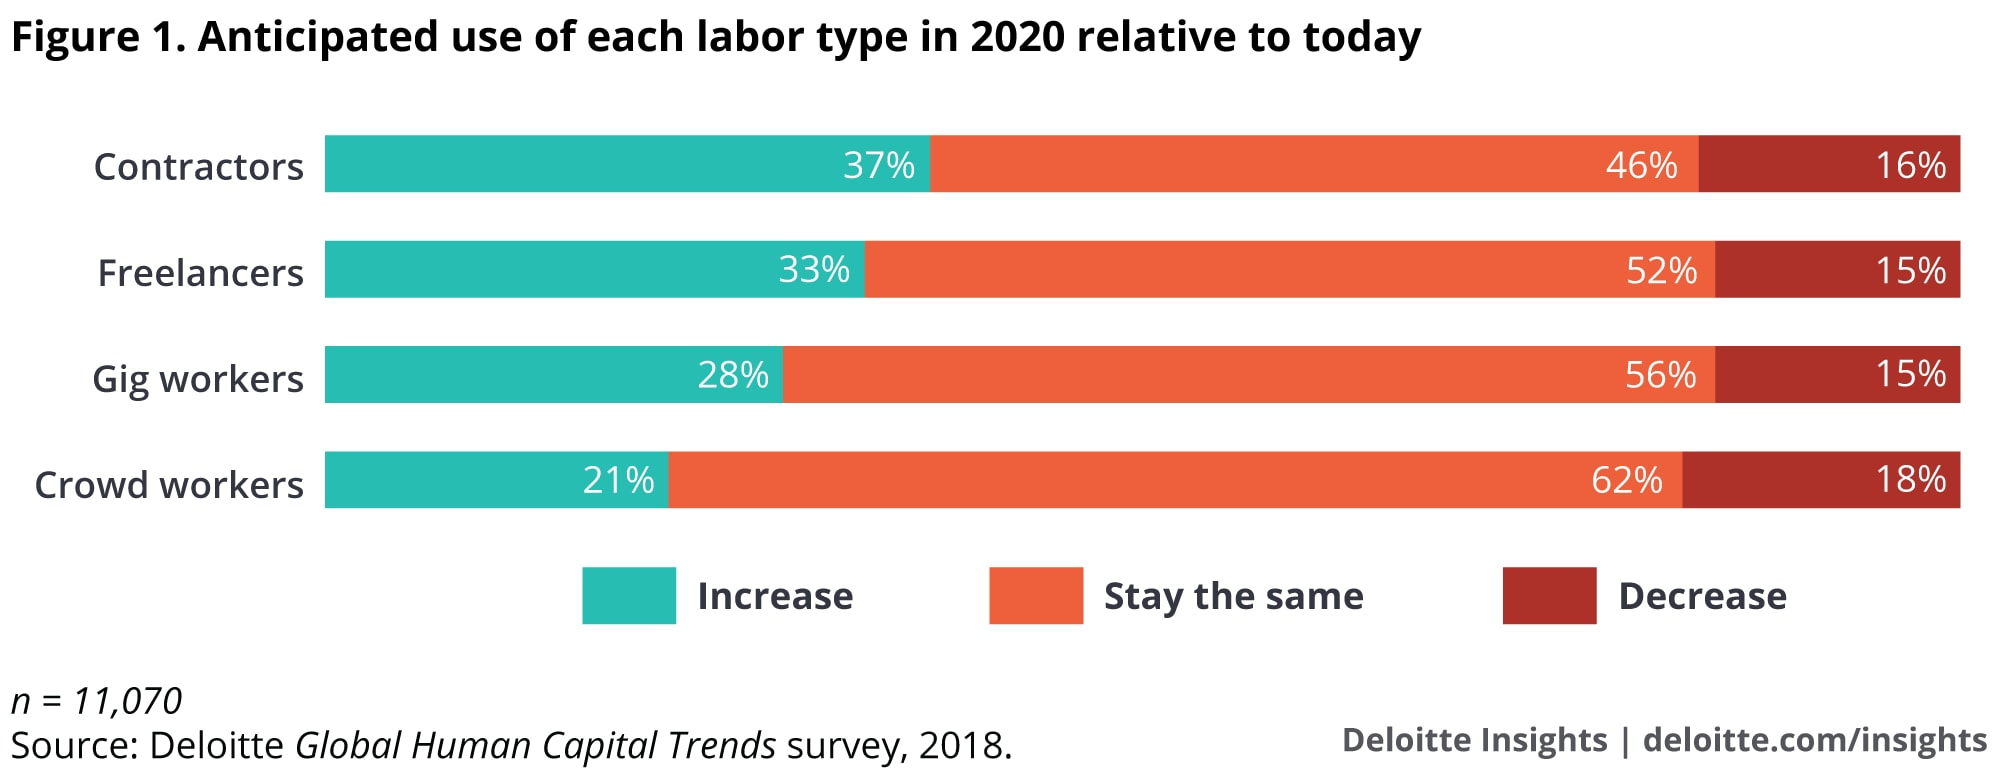 Anticipated use of each labor type in 2020 relative to today